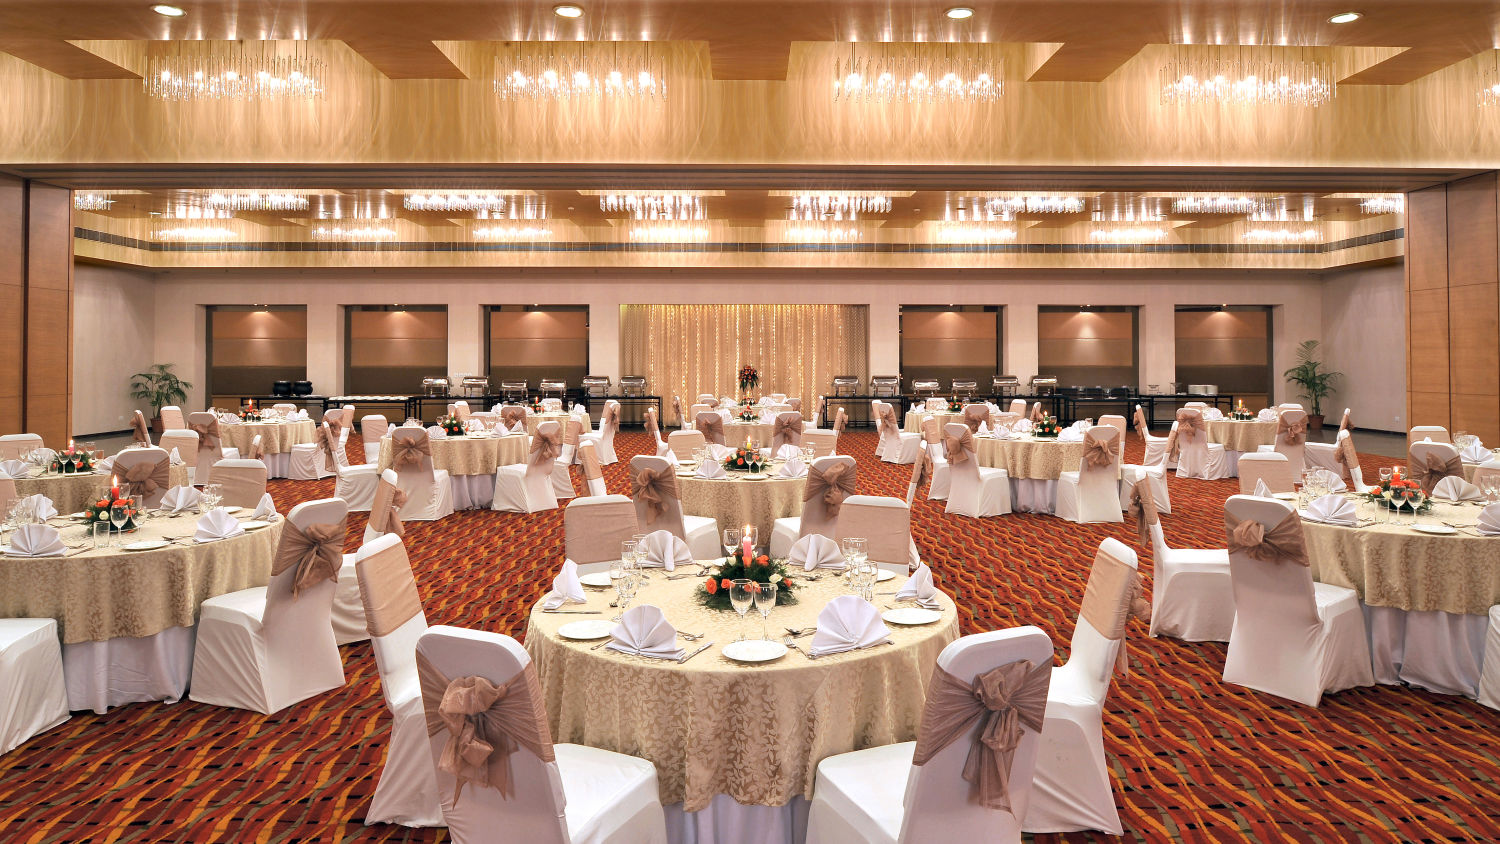 Banquets at Hometel Chandigarh, banquet halls in chandigarh   2